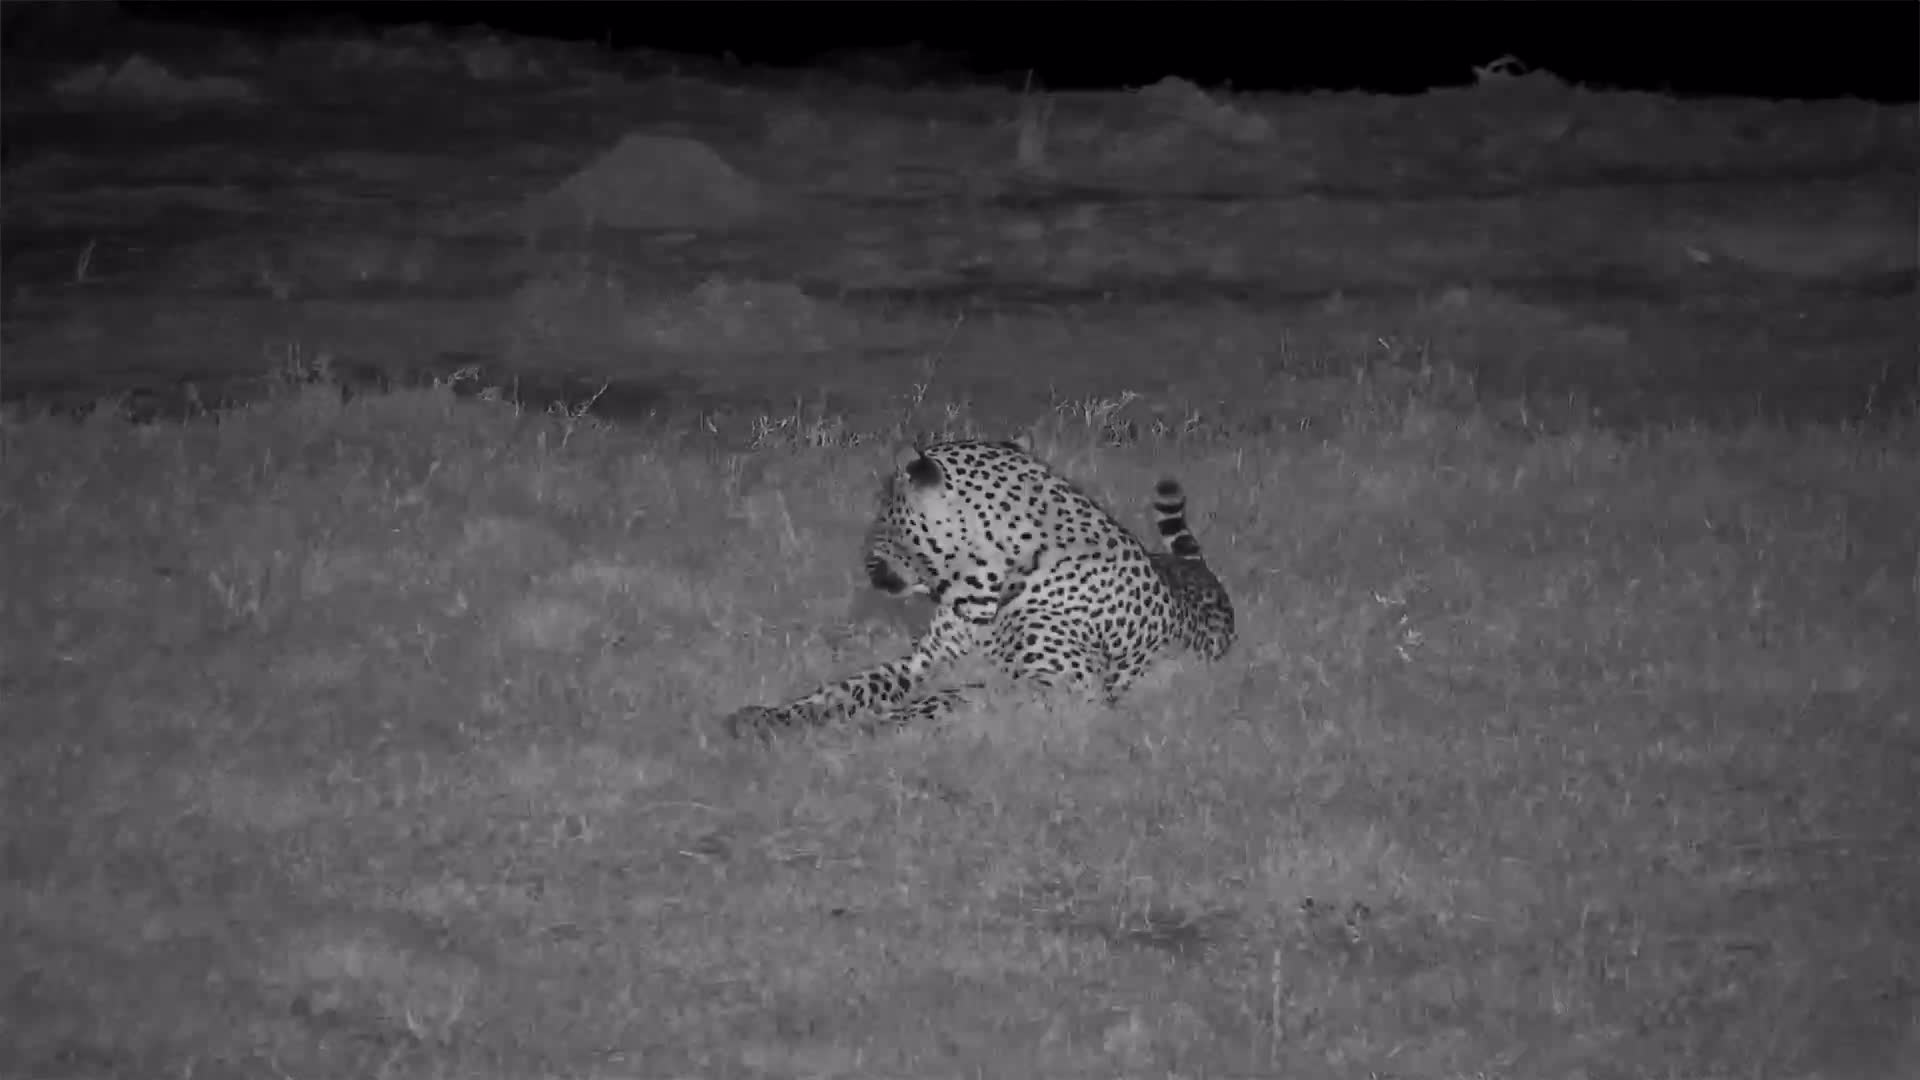 VIDEO:  Leopard Taking a Break From Scent Marking and Calling